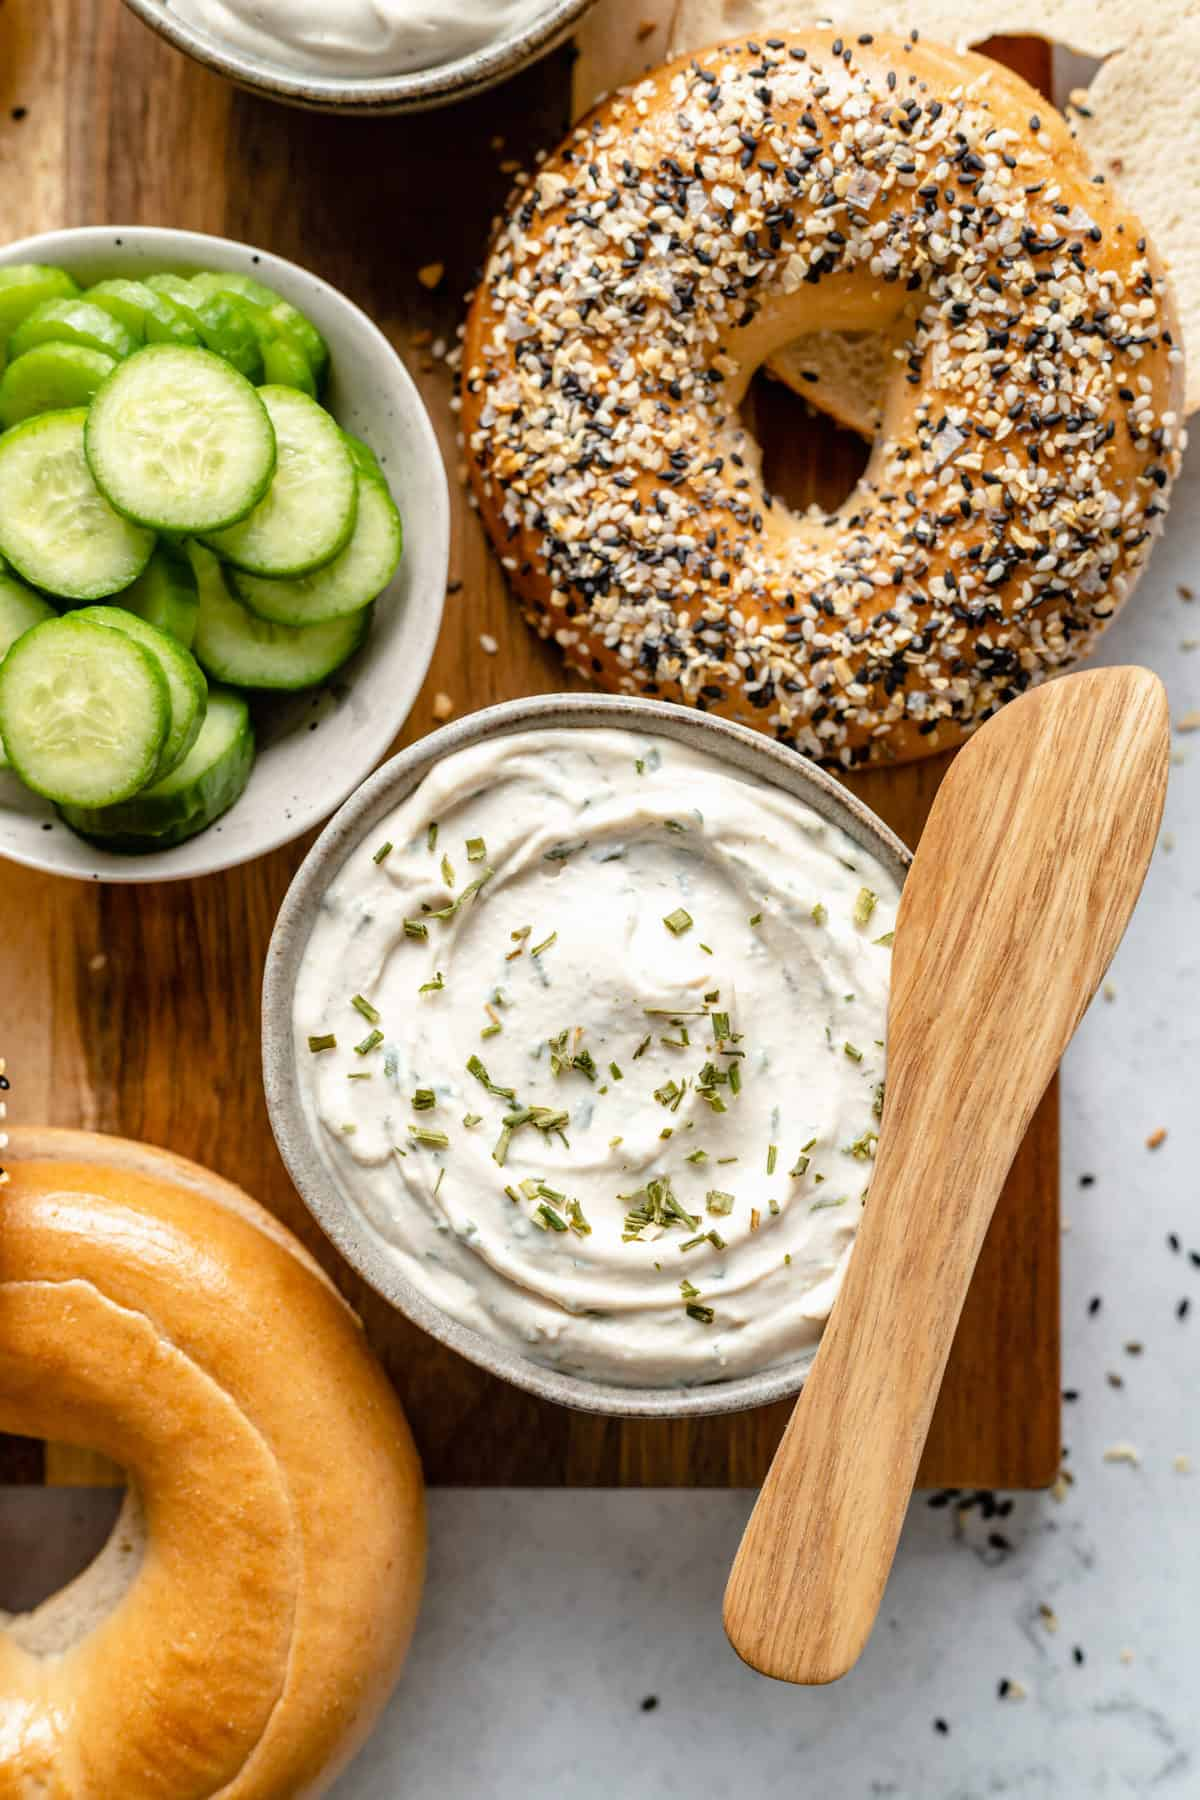 Cream cheese with chives and garlic.